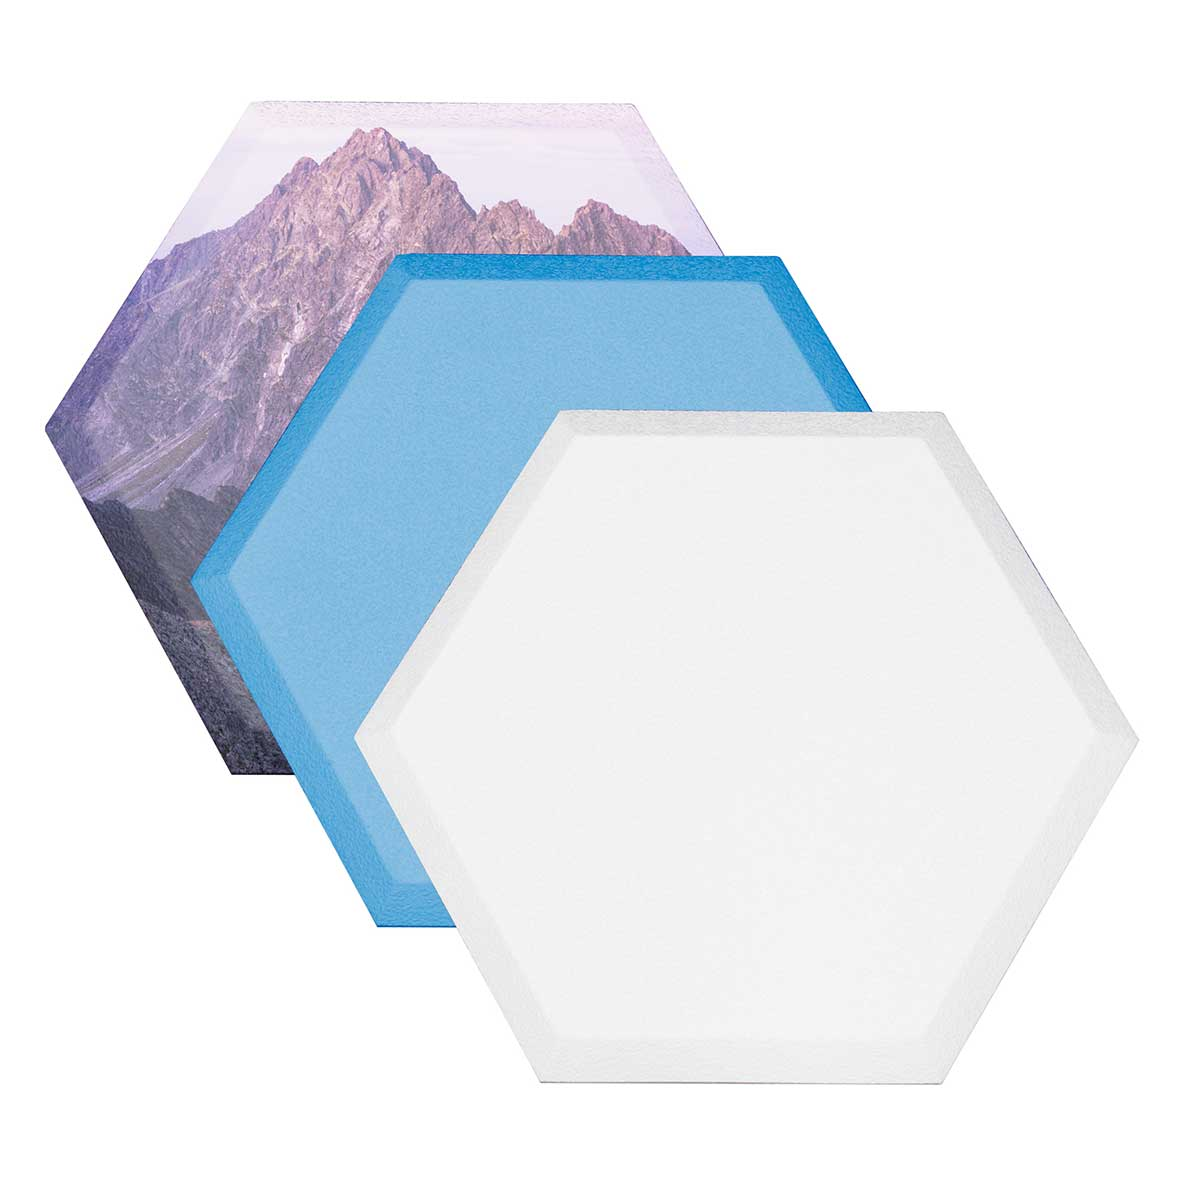 "Honeycomb 14""x16""x1.5"" hexagonal white paintable panels 12pc set P115 1416 09"